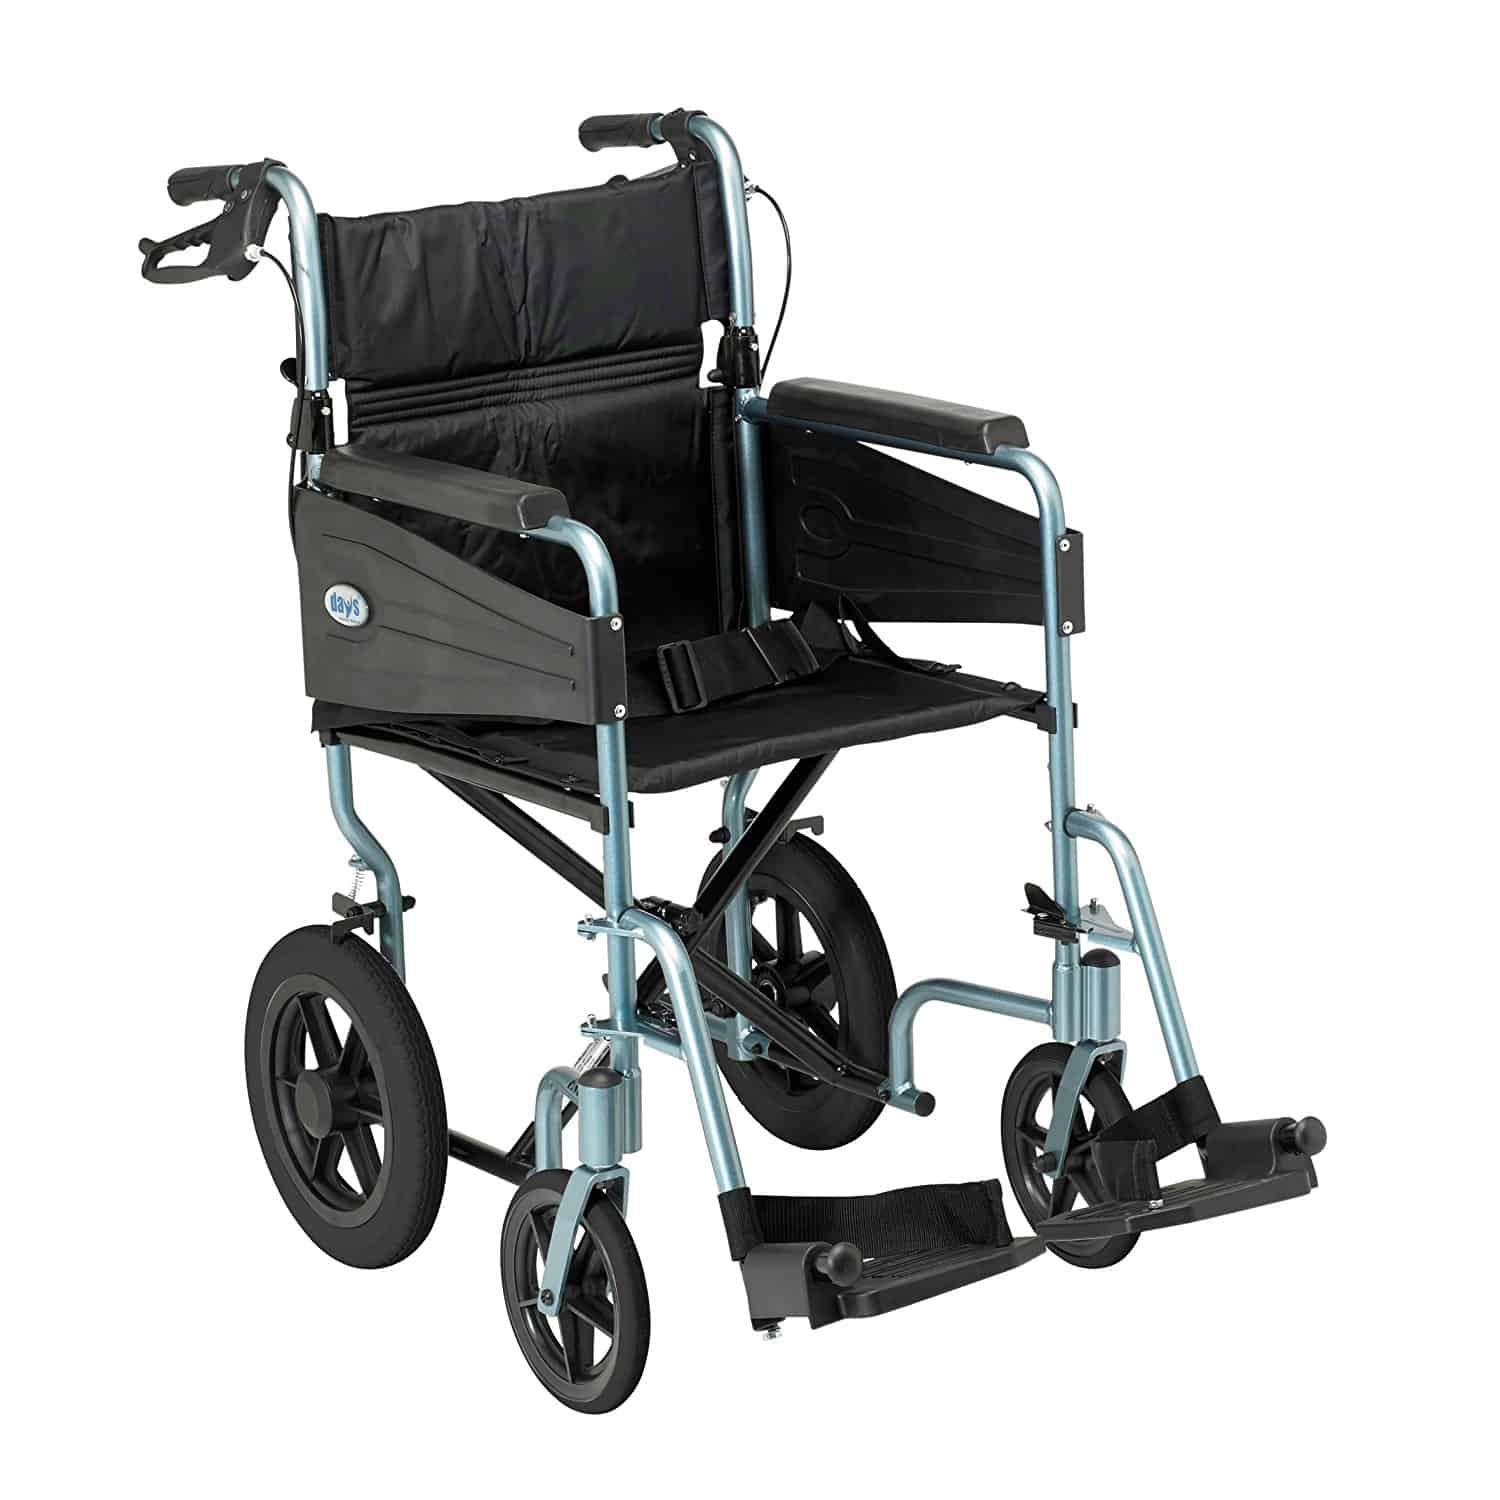 1959e1cbf BEST TRANSIT WHEELCHAIRS in 2019. Read this before buying one!